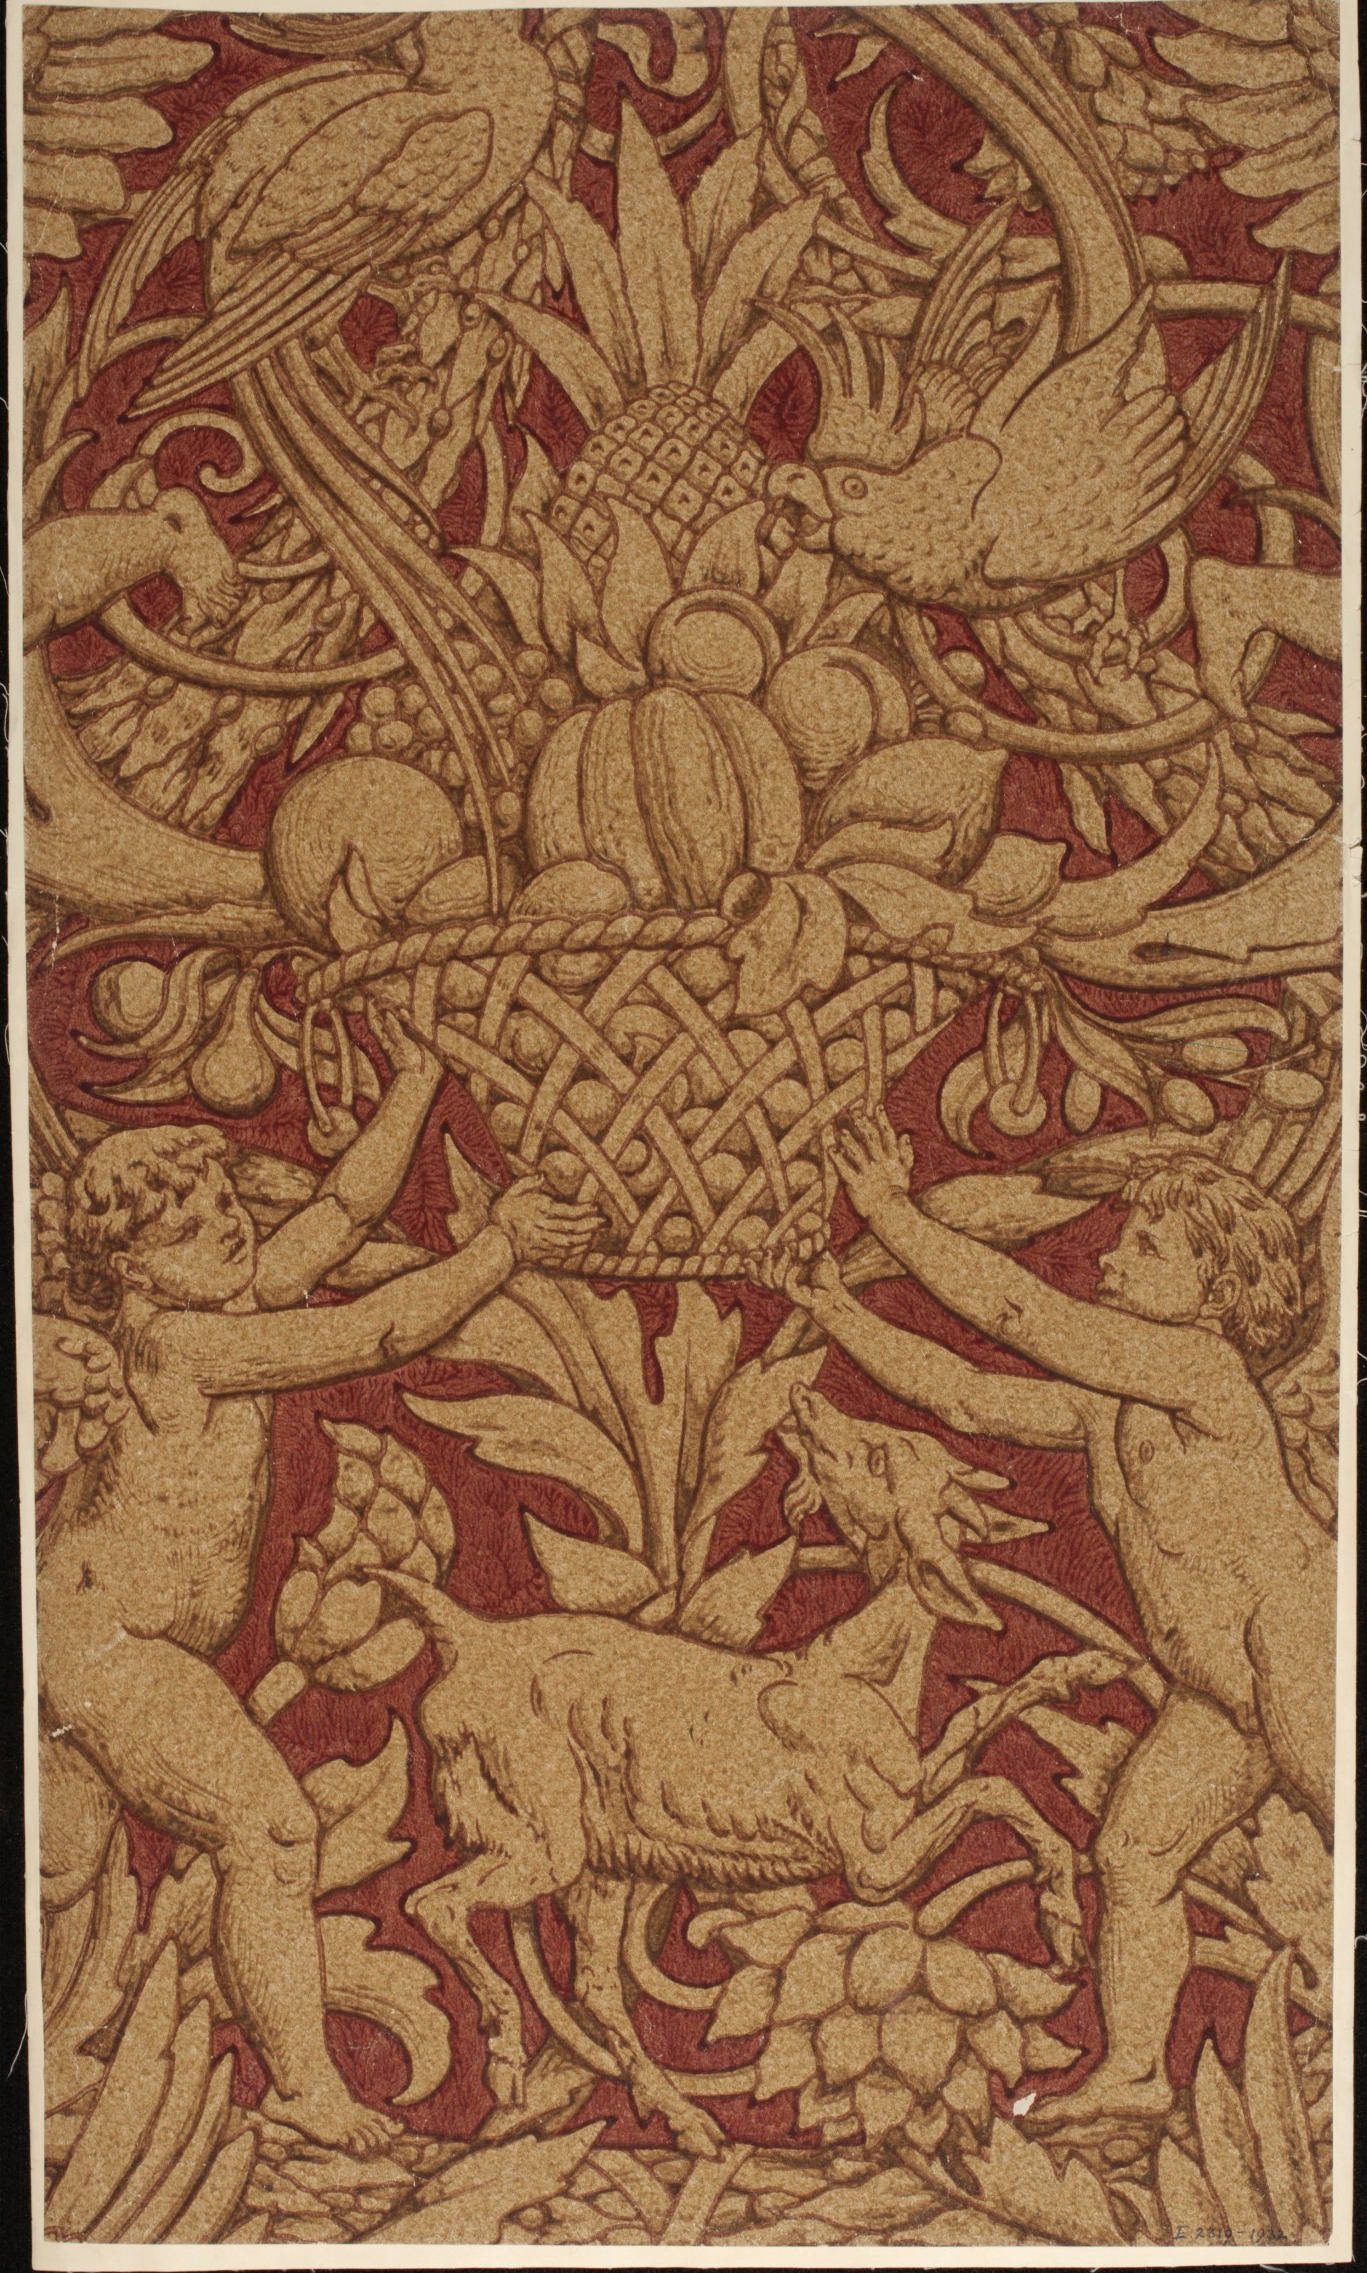 colour woodblock print on paper in red colourway, 85.1 x 49.2 cm. Victoria and Albert Museum, London